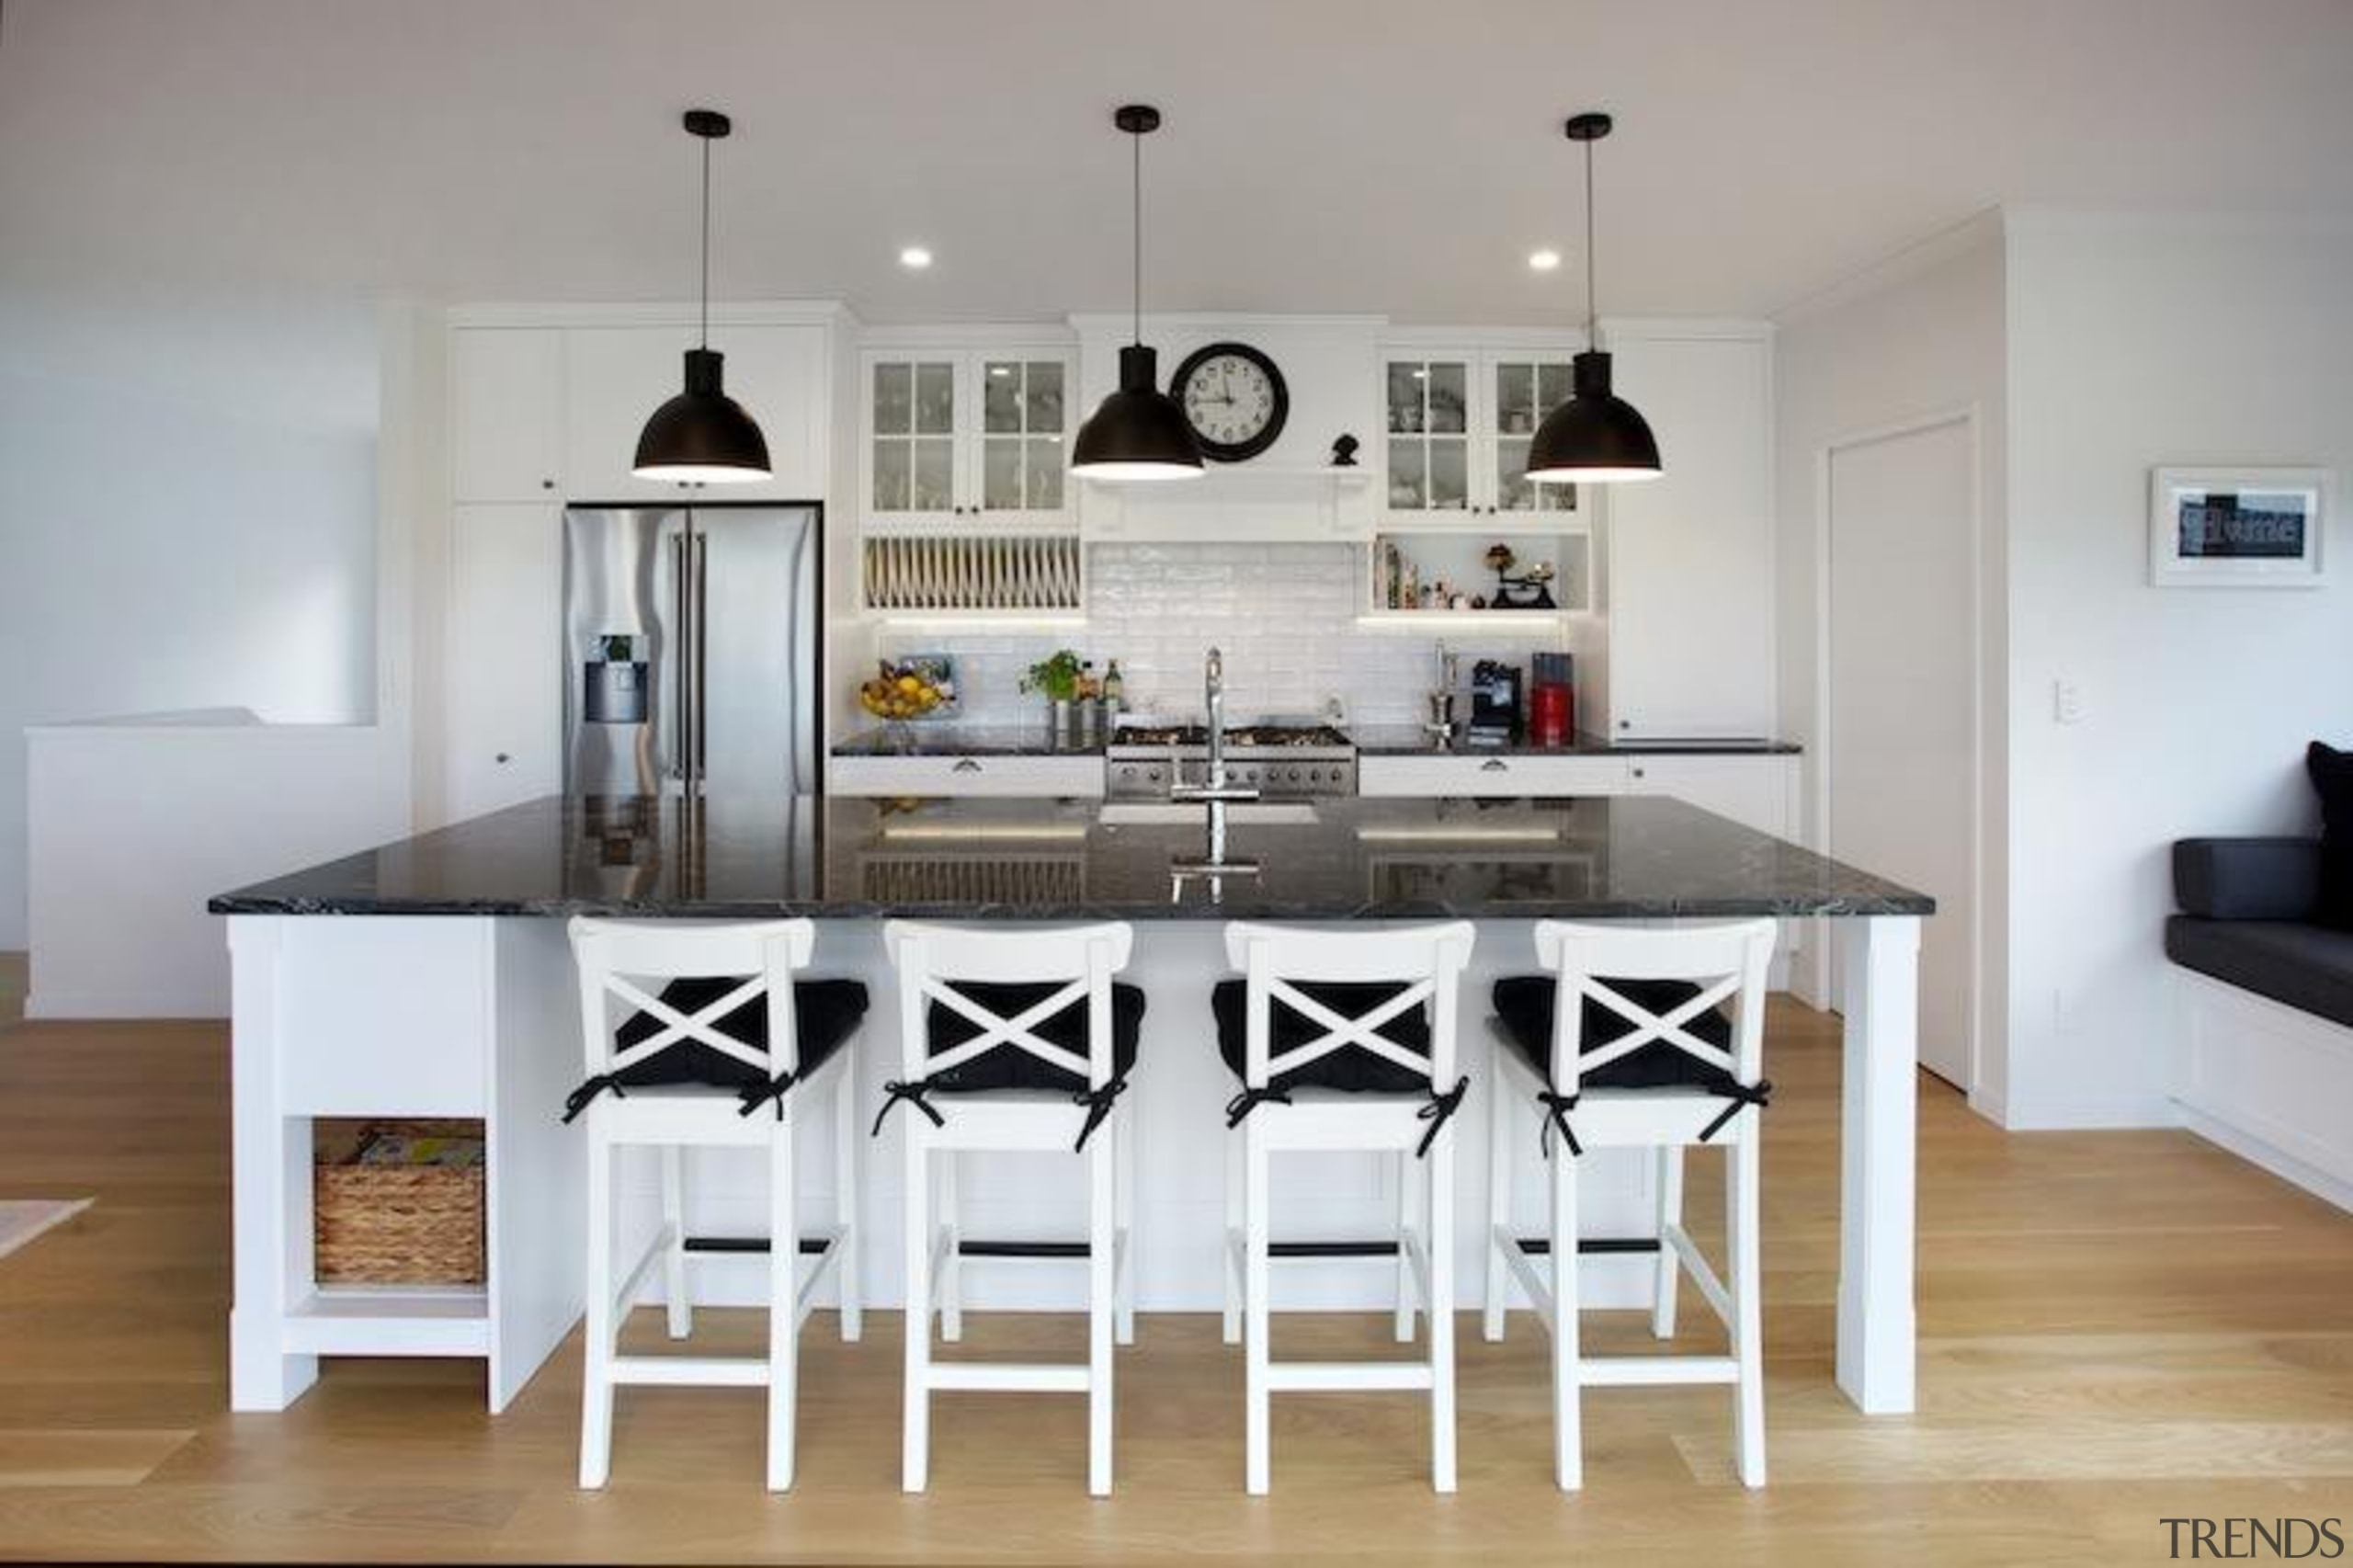 Proudly brought to you by Kitchen Things - countertop, cuisine classique, dining room, furniture, interior design, kitchen, room, table, gray, white